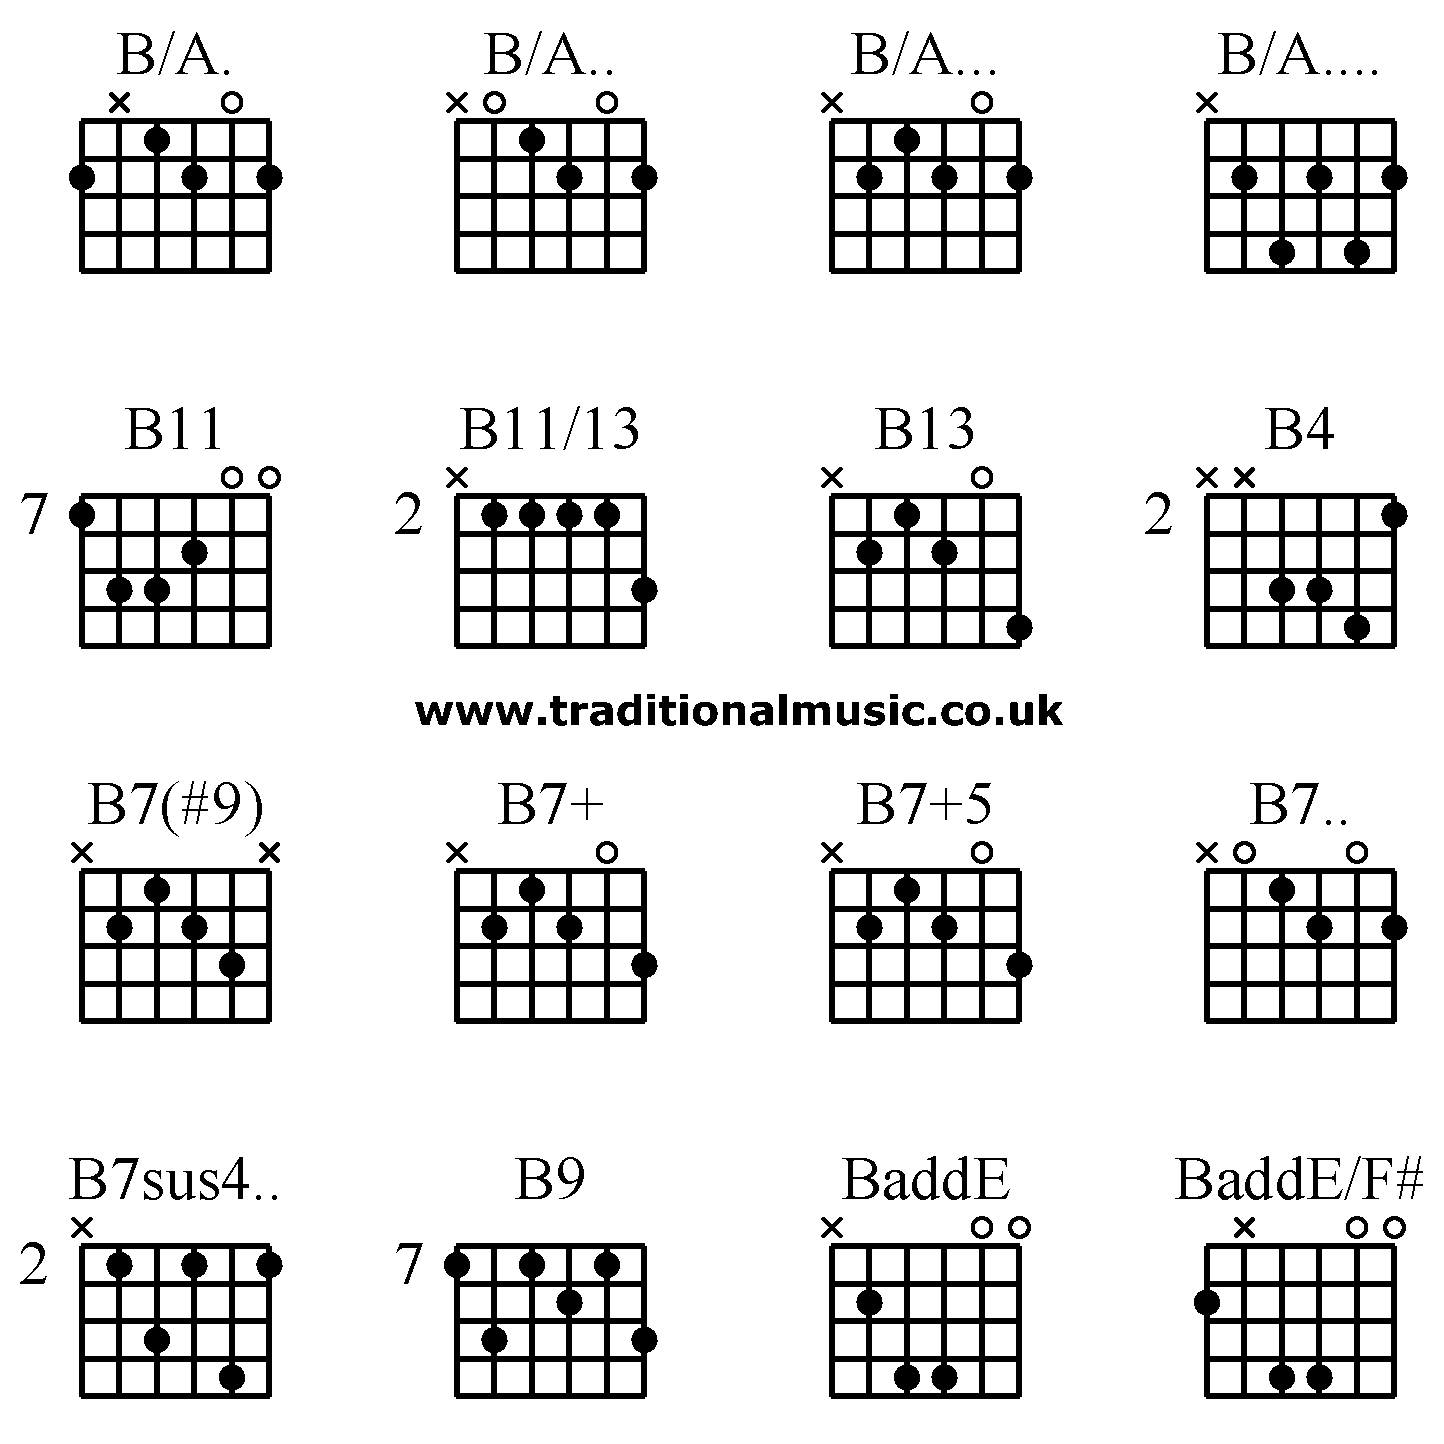 Guitar Chords Advanced Ba Ba Ba Ba B11 B1113 B13 B4 B7